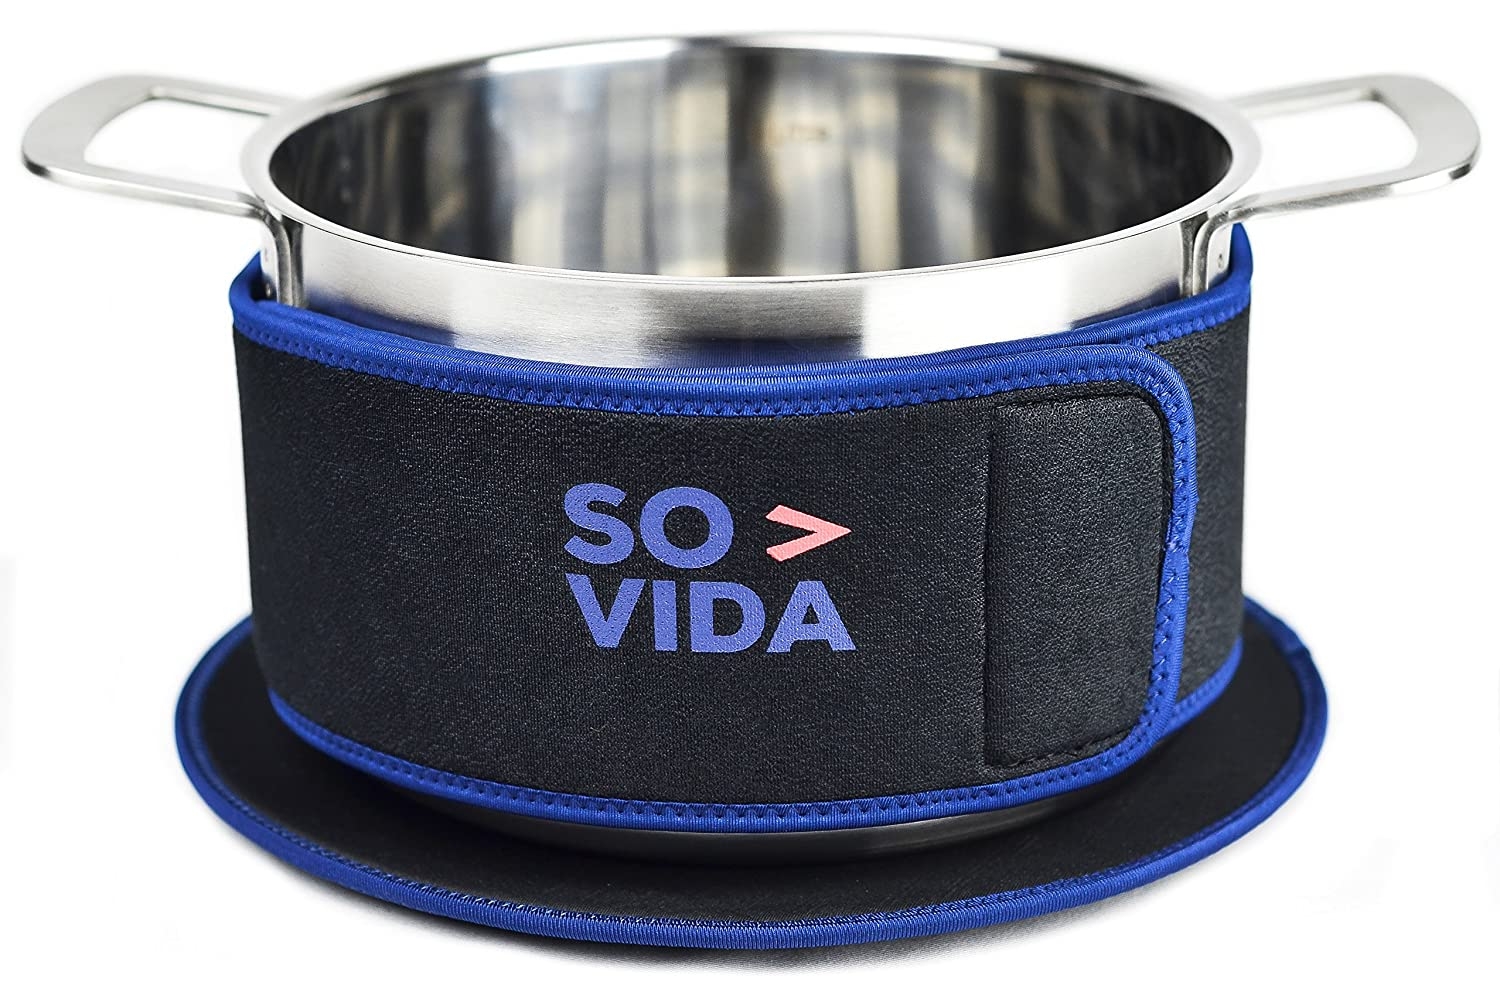 SO-VIDA Sous Vide Insulation Band (4 Inch) and Mat for Pots - Protects Your Work Surfaces and Saves You Electricity From Increased Insulation